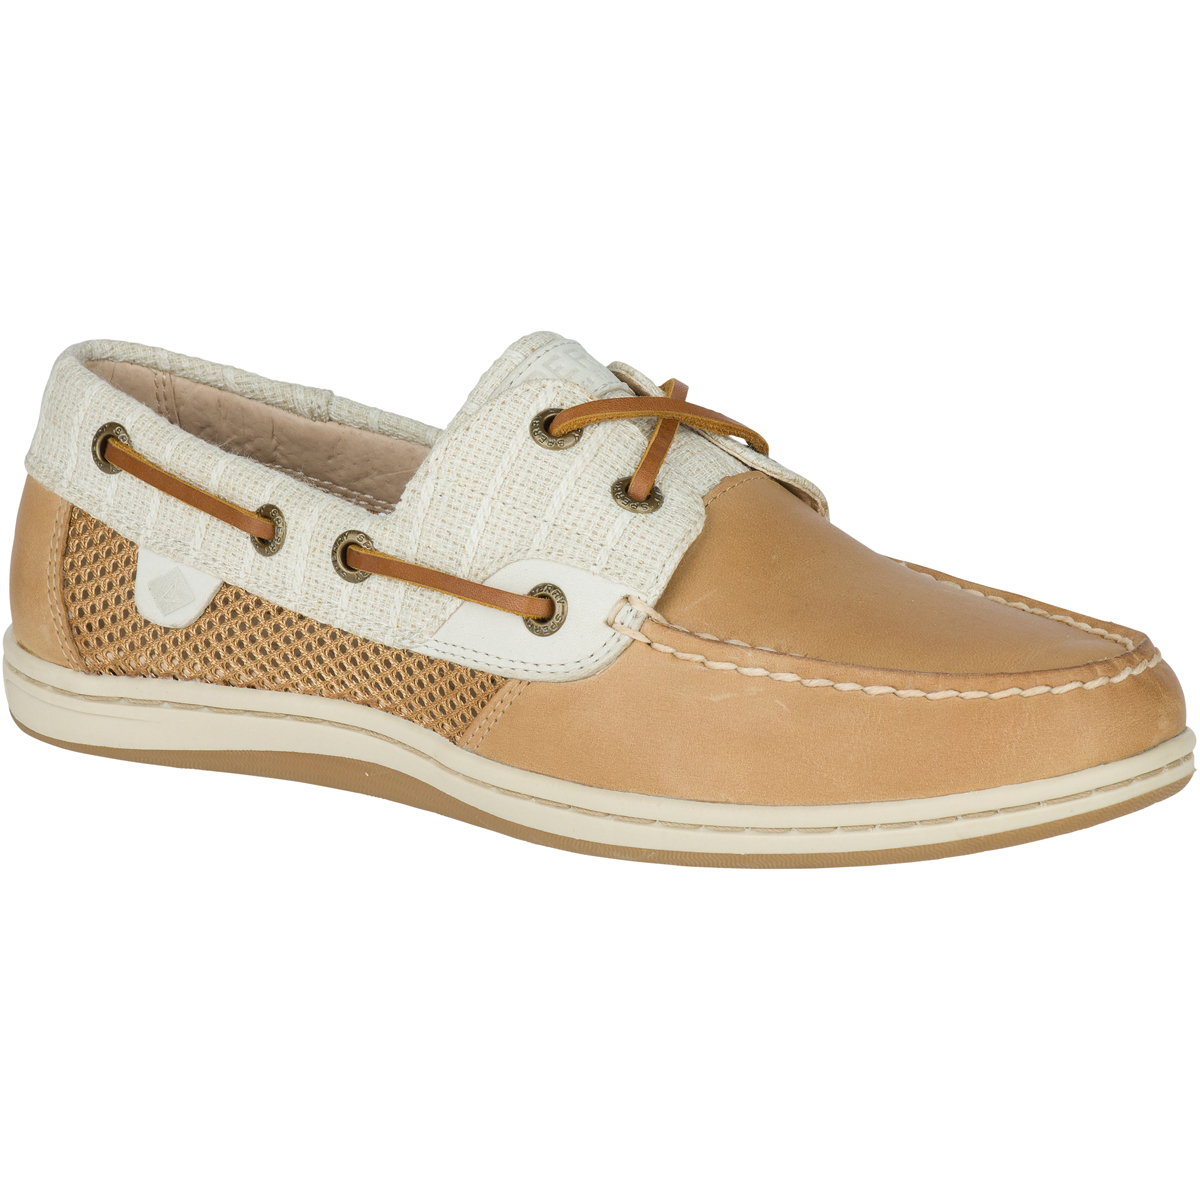 SPERRY WOMEN'S KOIFISH STRIPE BOAT SHOE (STS98170)